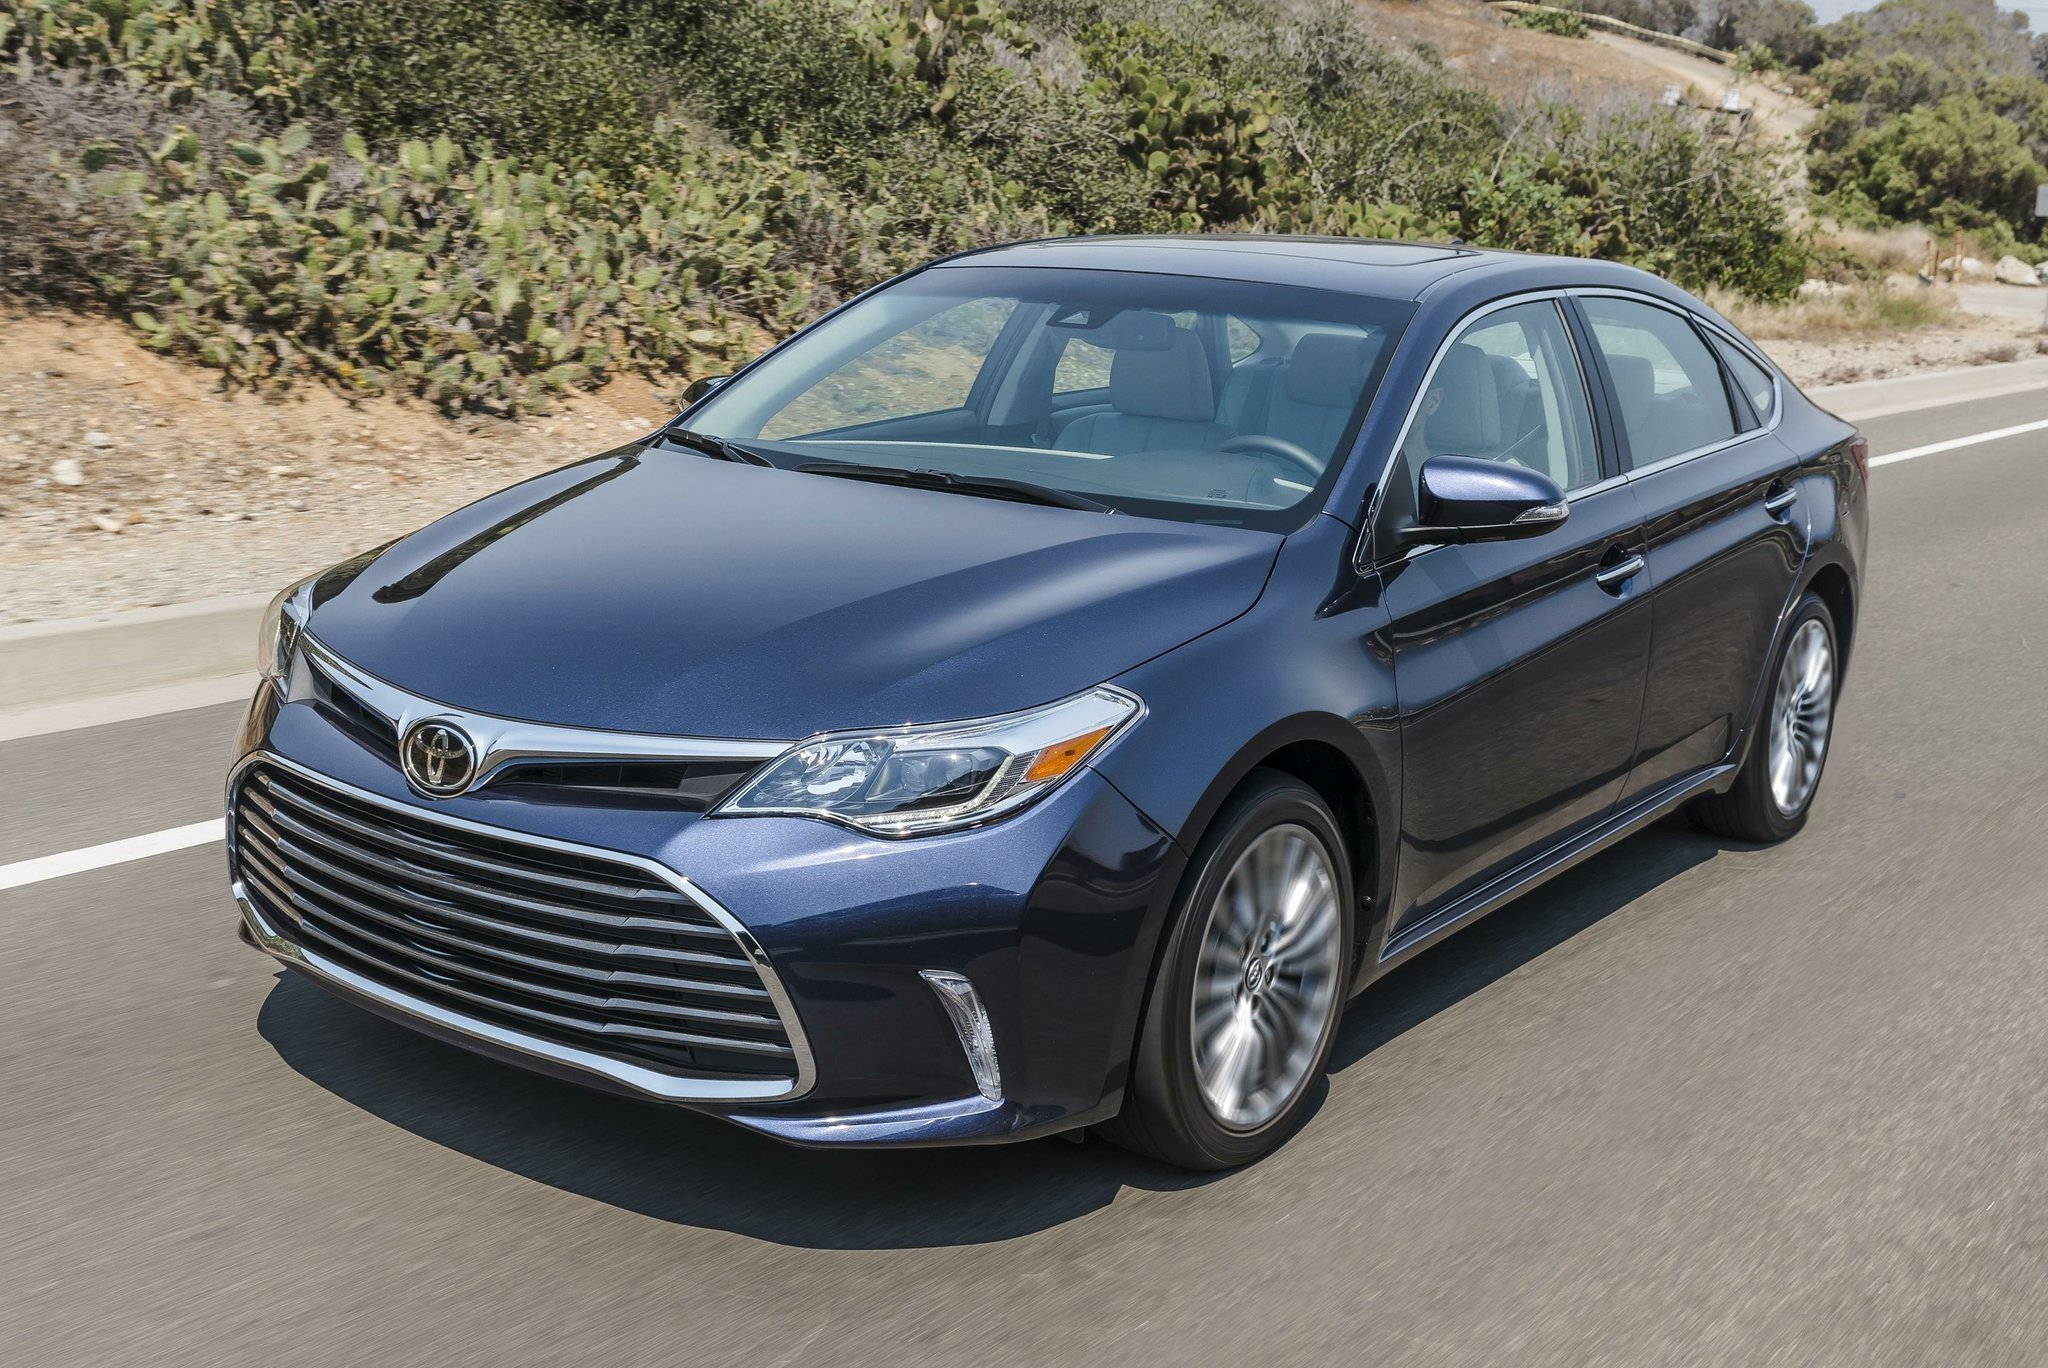 The avalon hybrid is often overlooked as a large and roomy sedan with a durable disposition and fuel sipping efficiency the san diego union tribune